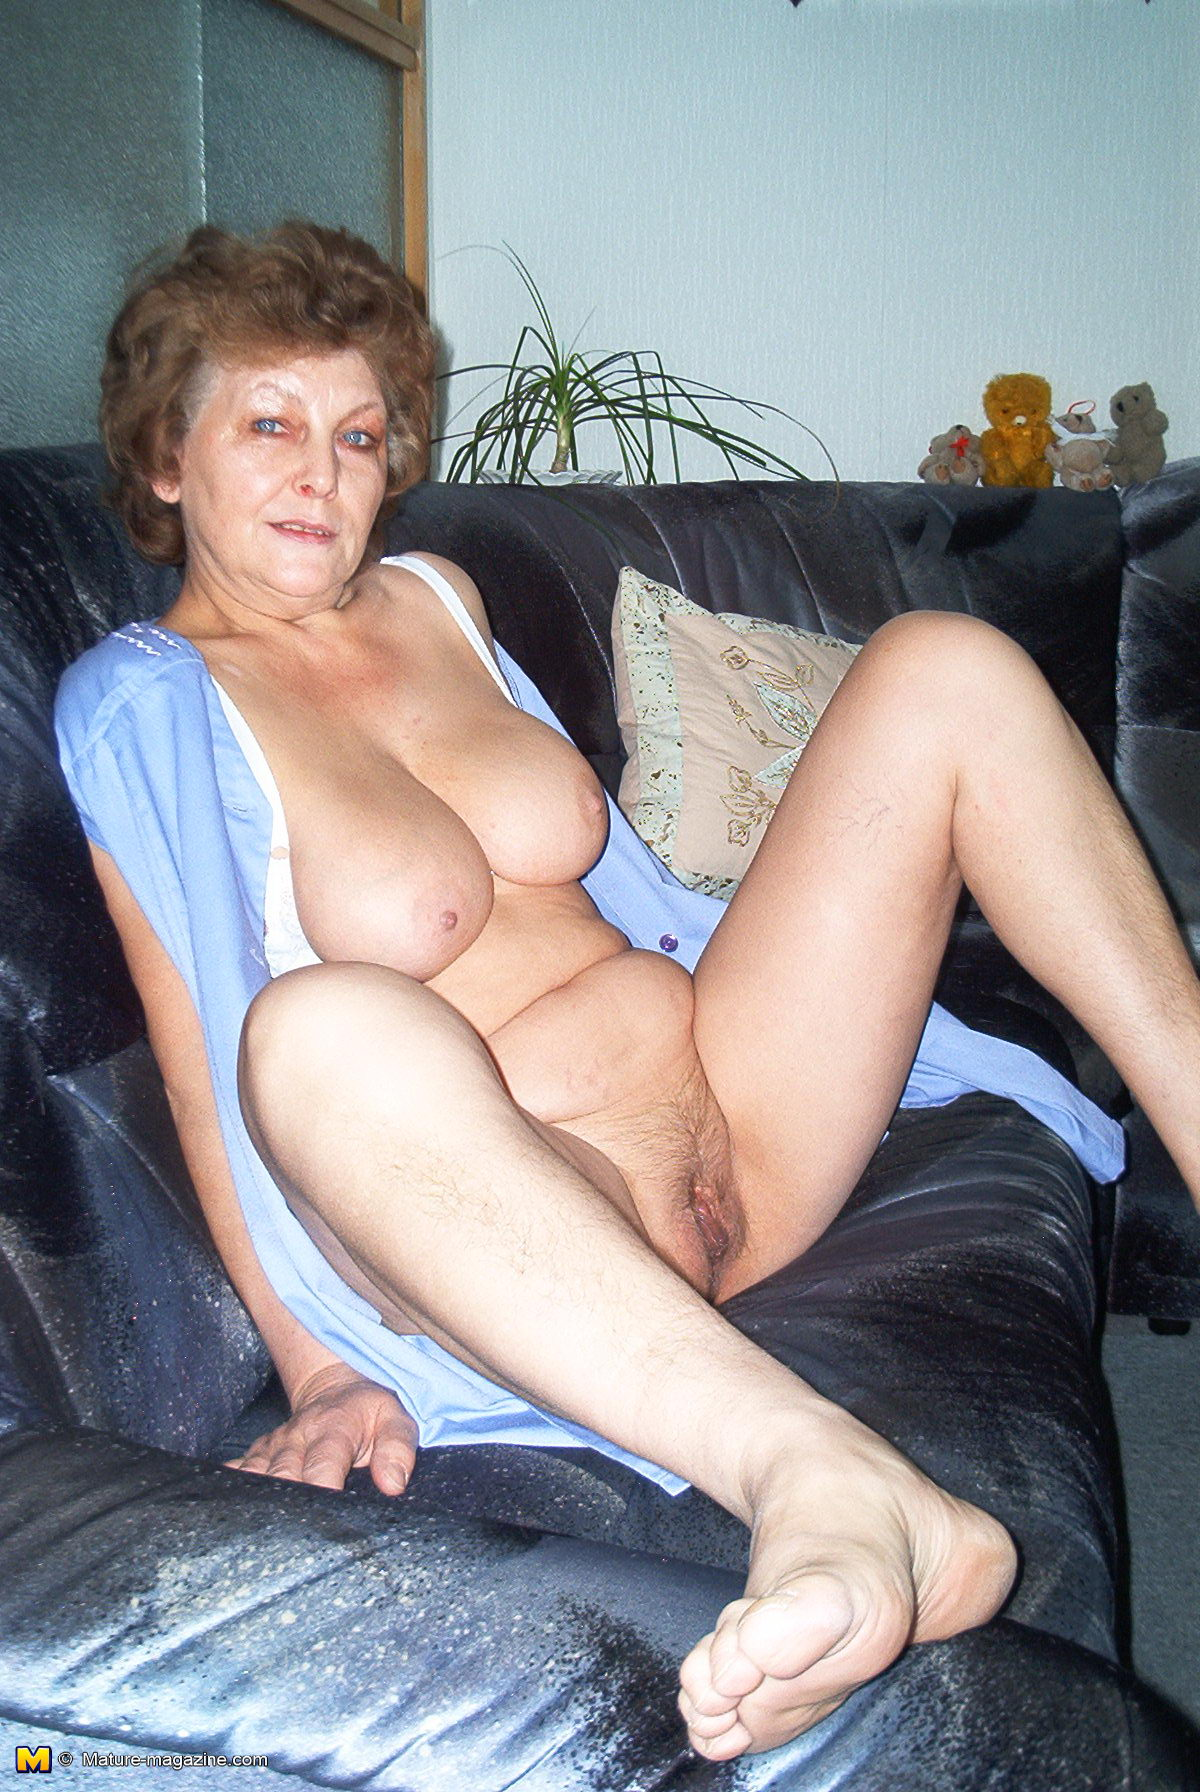 Dirty kinky mature women 42 cd1